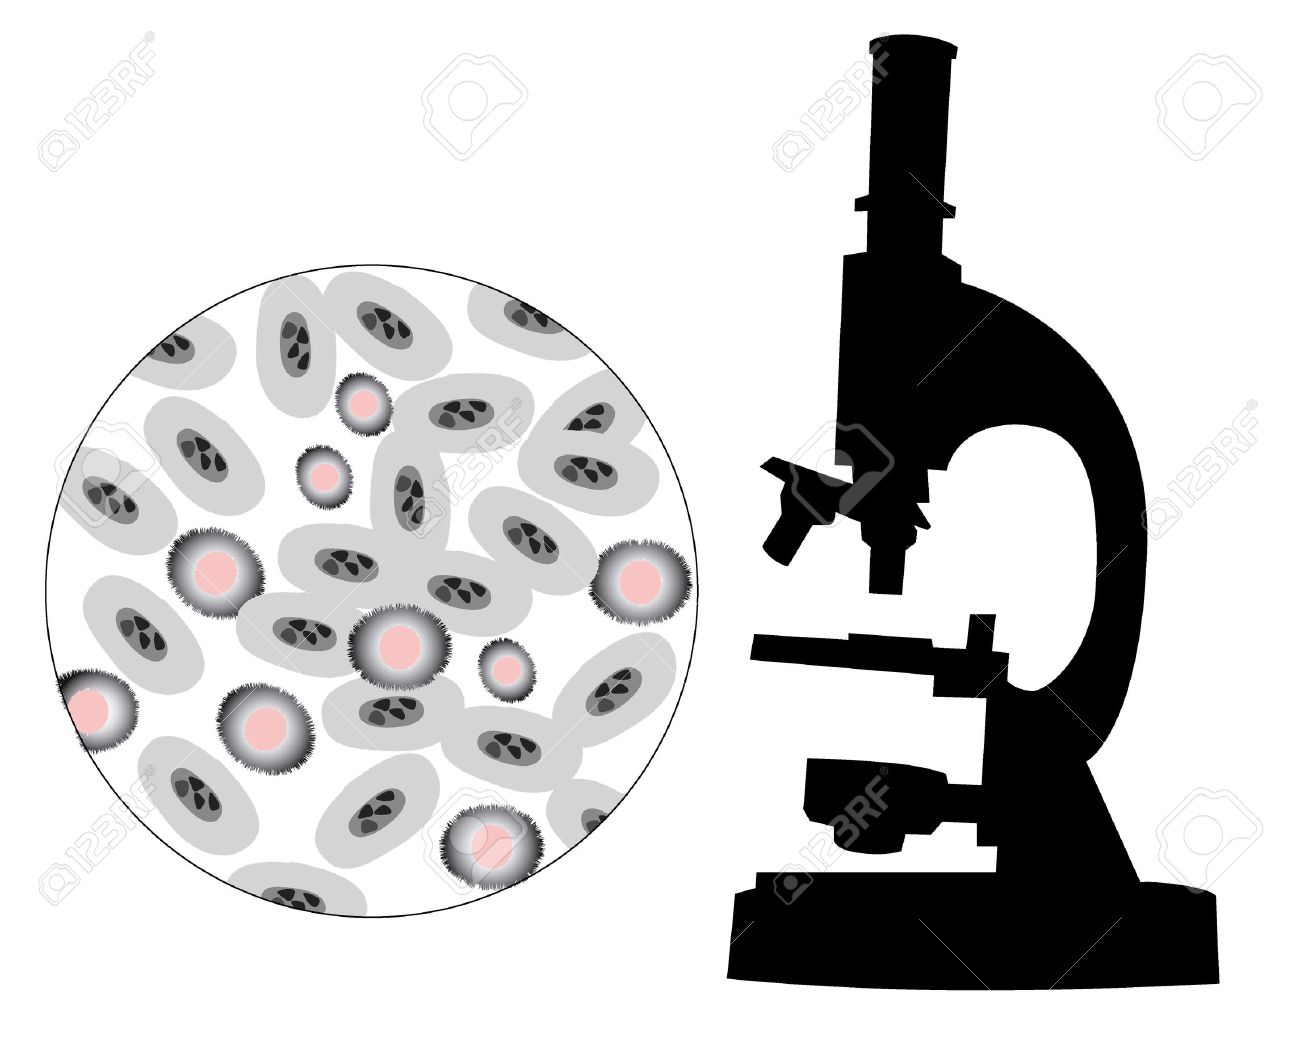 Silhouette of a microscope with the image of bacteria on a white background - 8370506